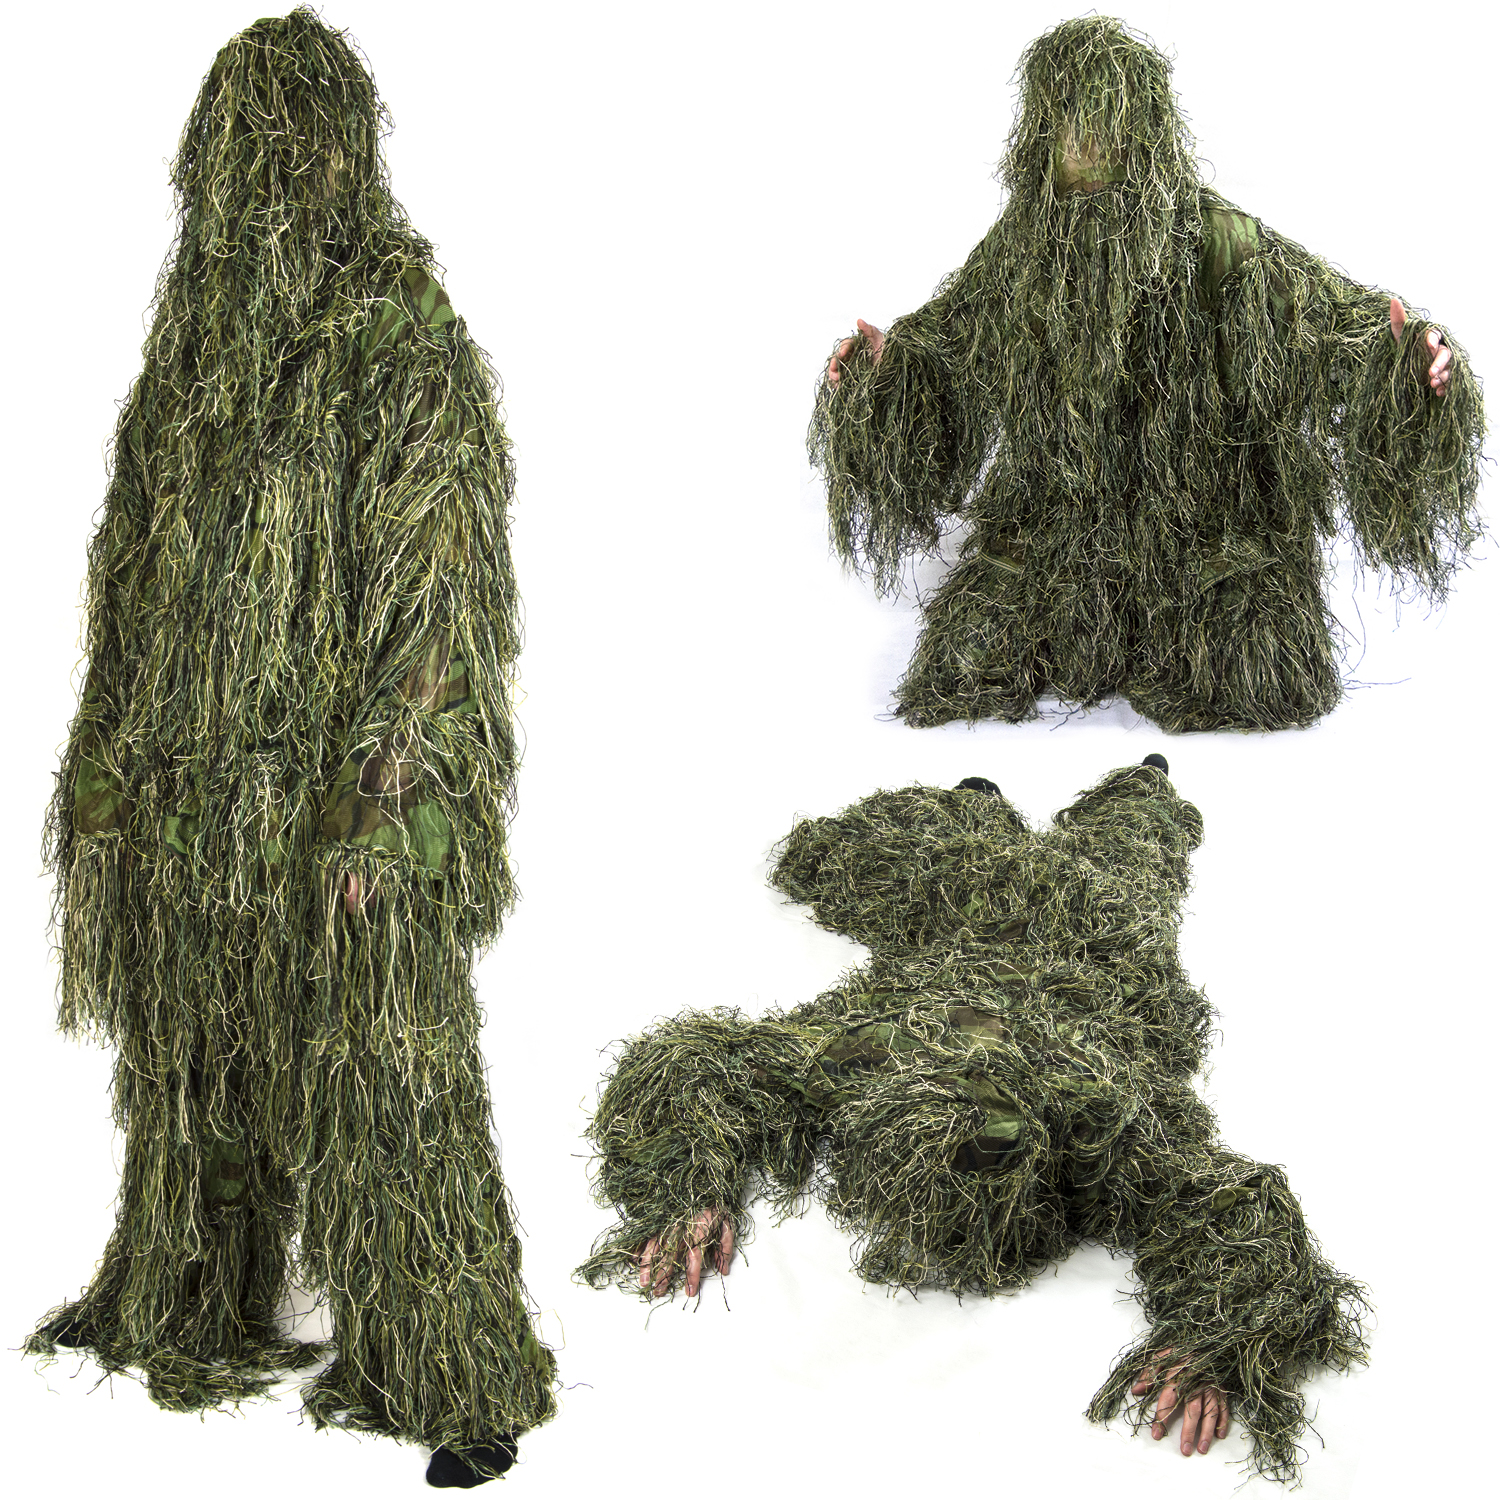 Guide To Bikepacking Bags besides 99184 Nitehawk Camouflage Kids Ghillie Suit together with Cayman Gi Speargun Id 8208297 further 137 813 further Sail Fish. on electrical clothing